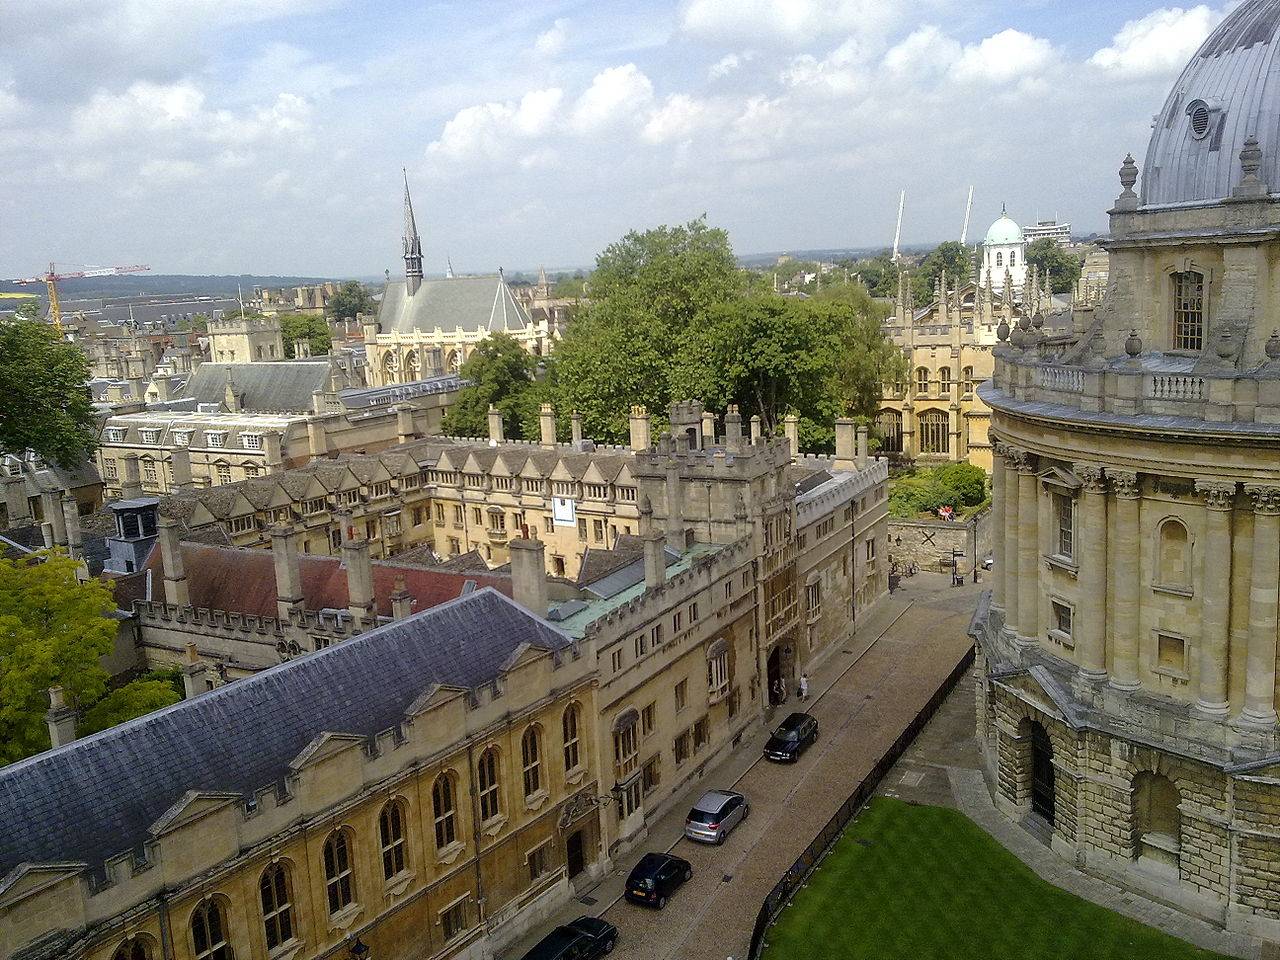 Christ Church and Brasenose JCRs declare state of war